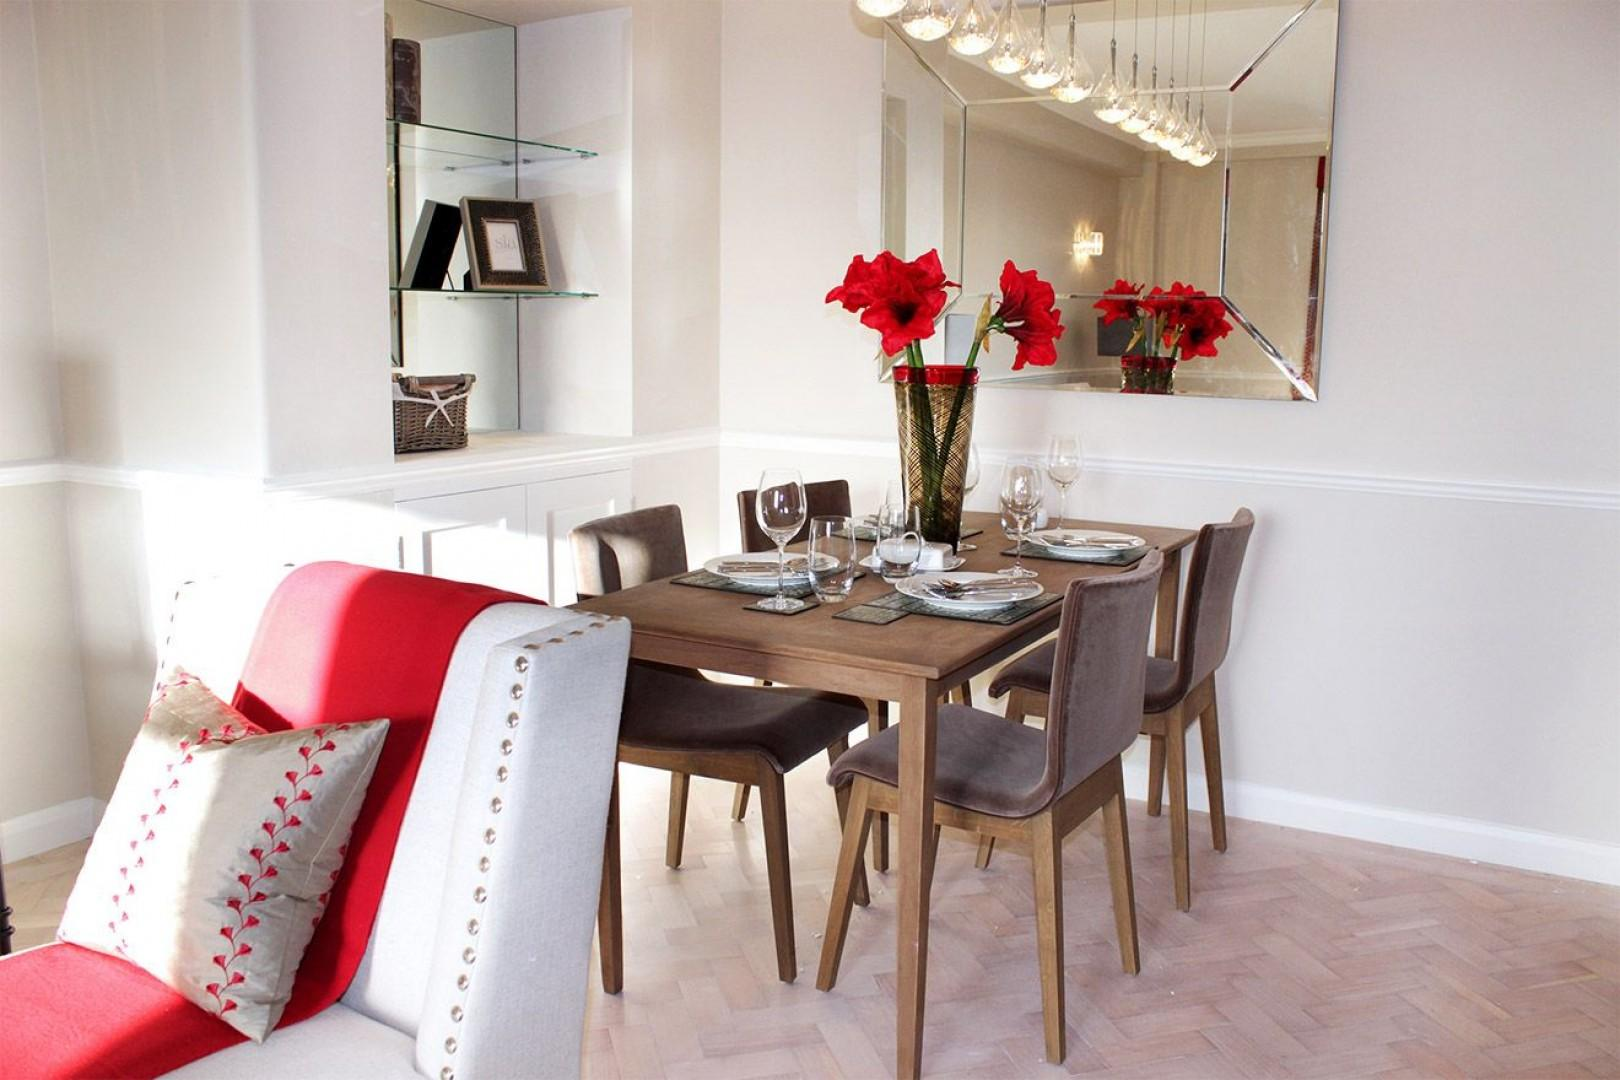 Dining area with wooden table seats four comfortably